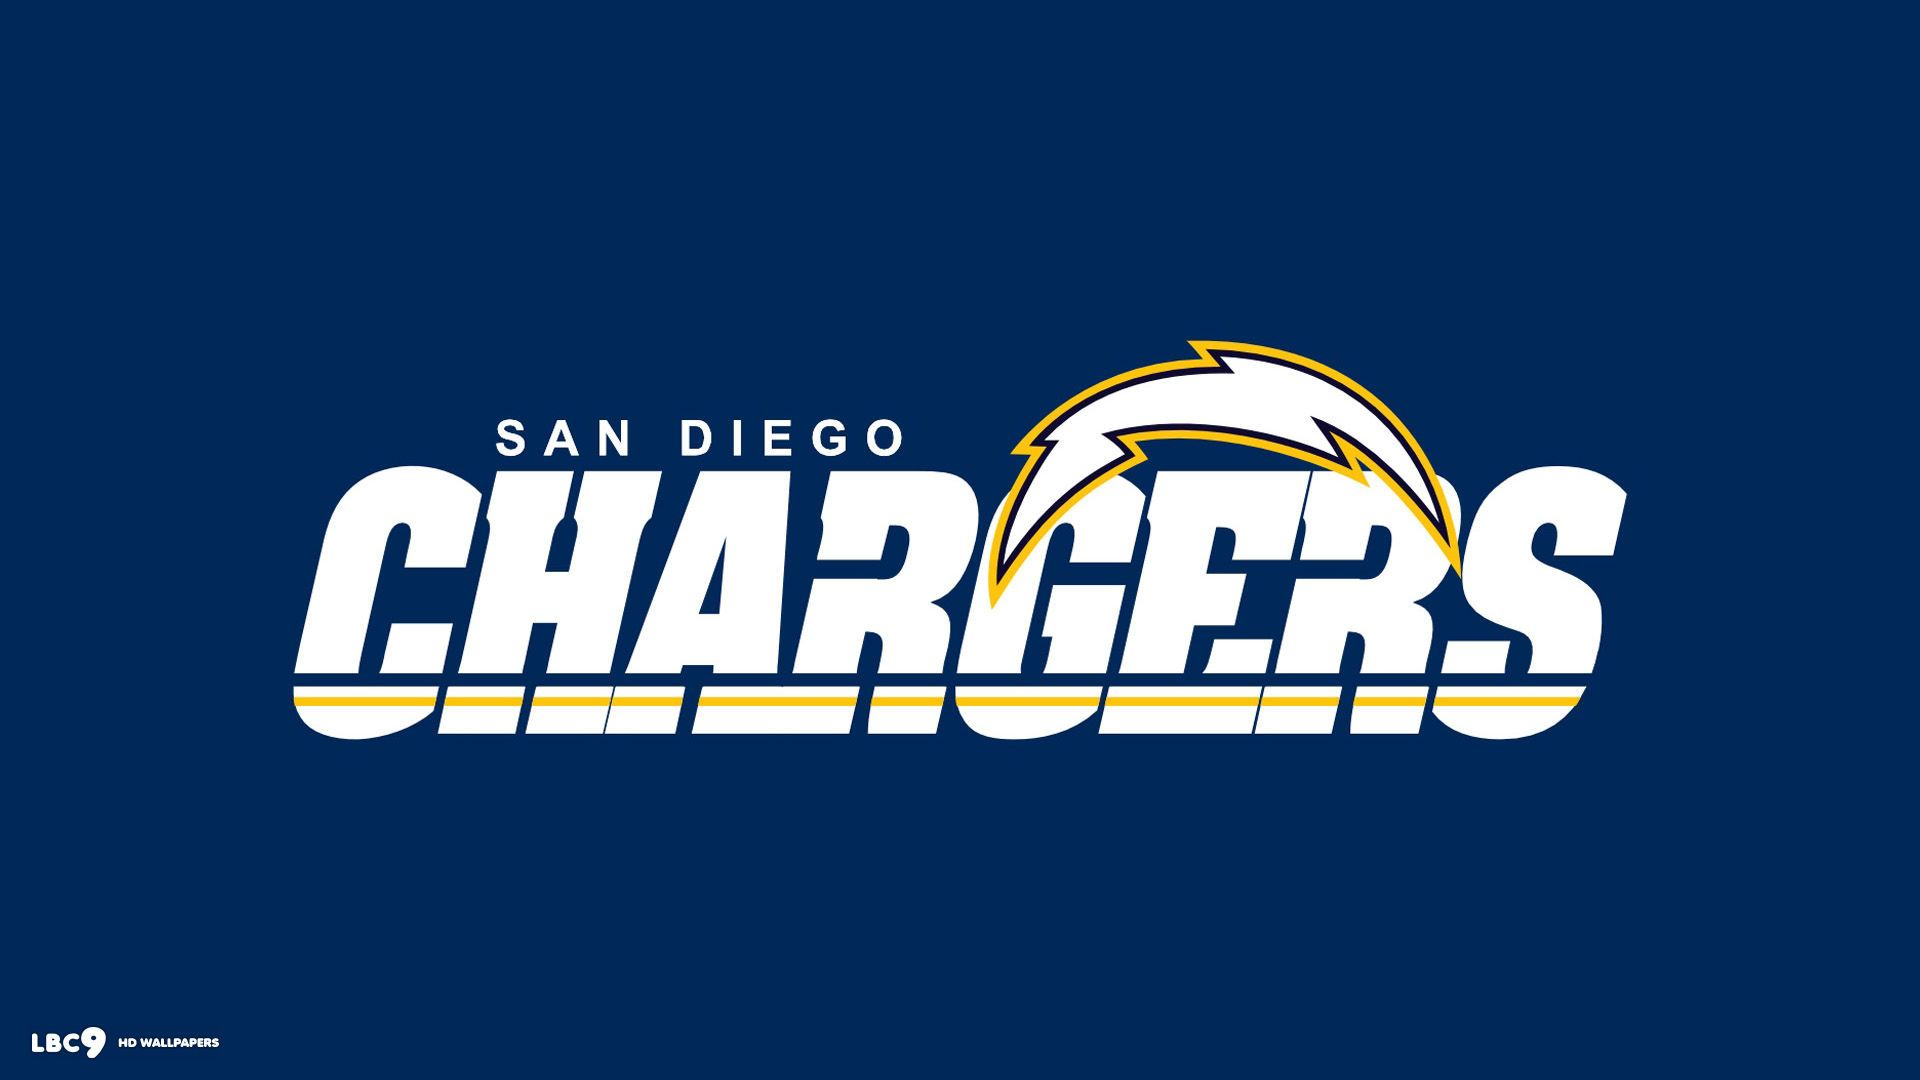 San Diego Chargers Wallpapers HD Download 1920x1080